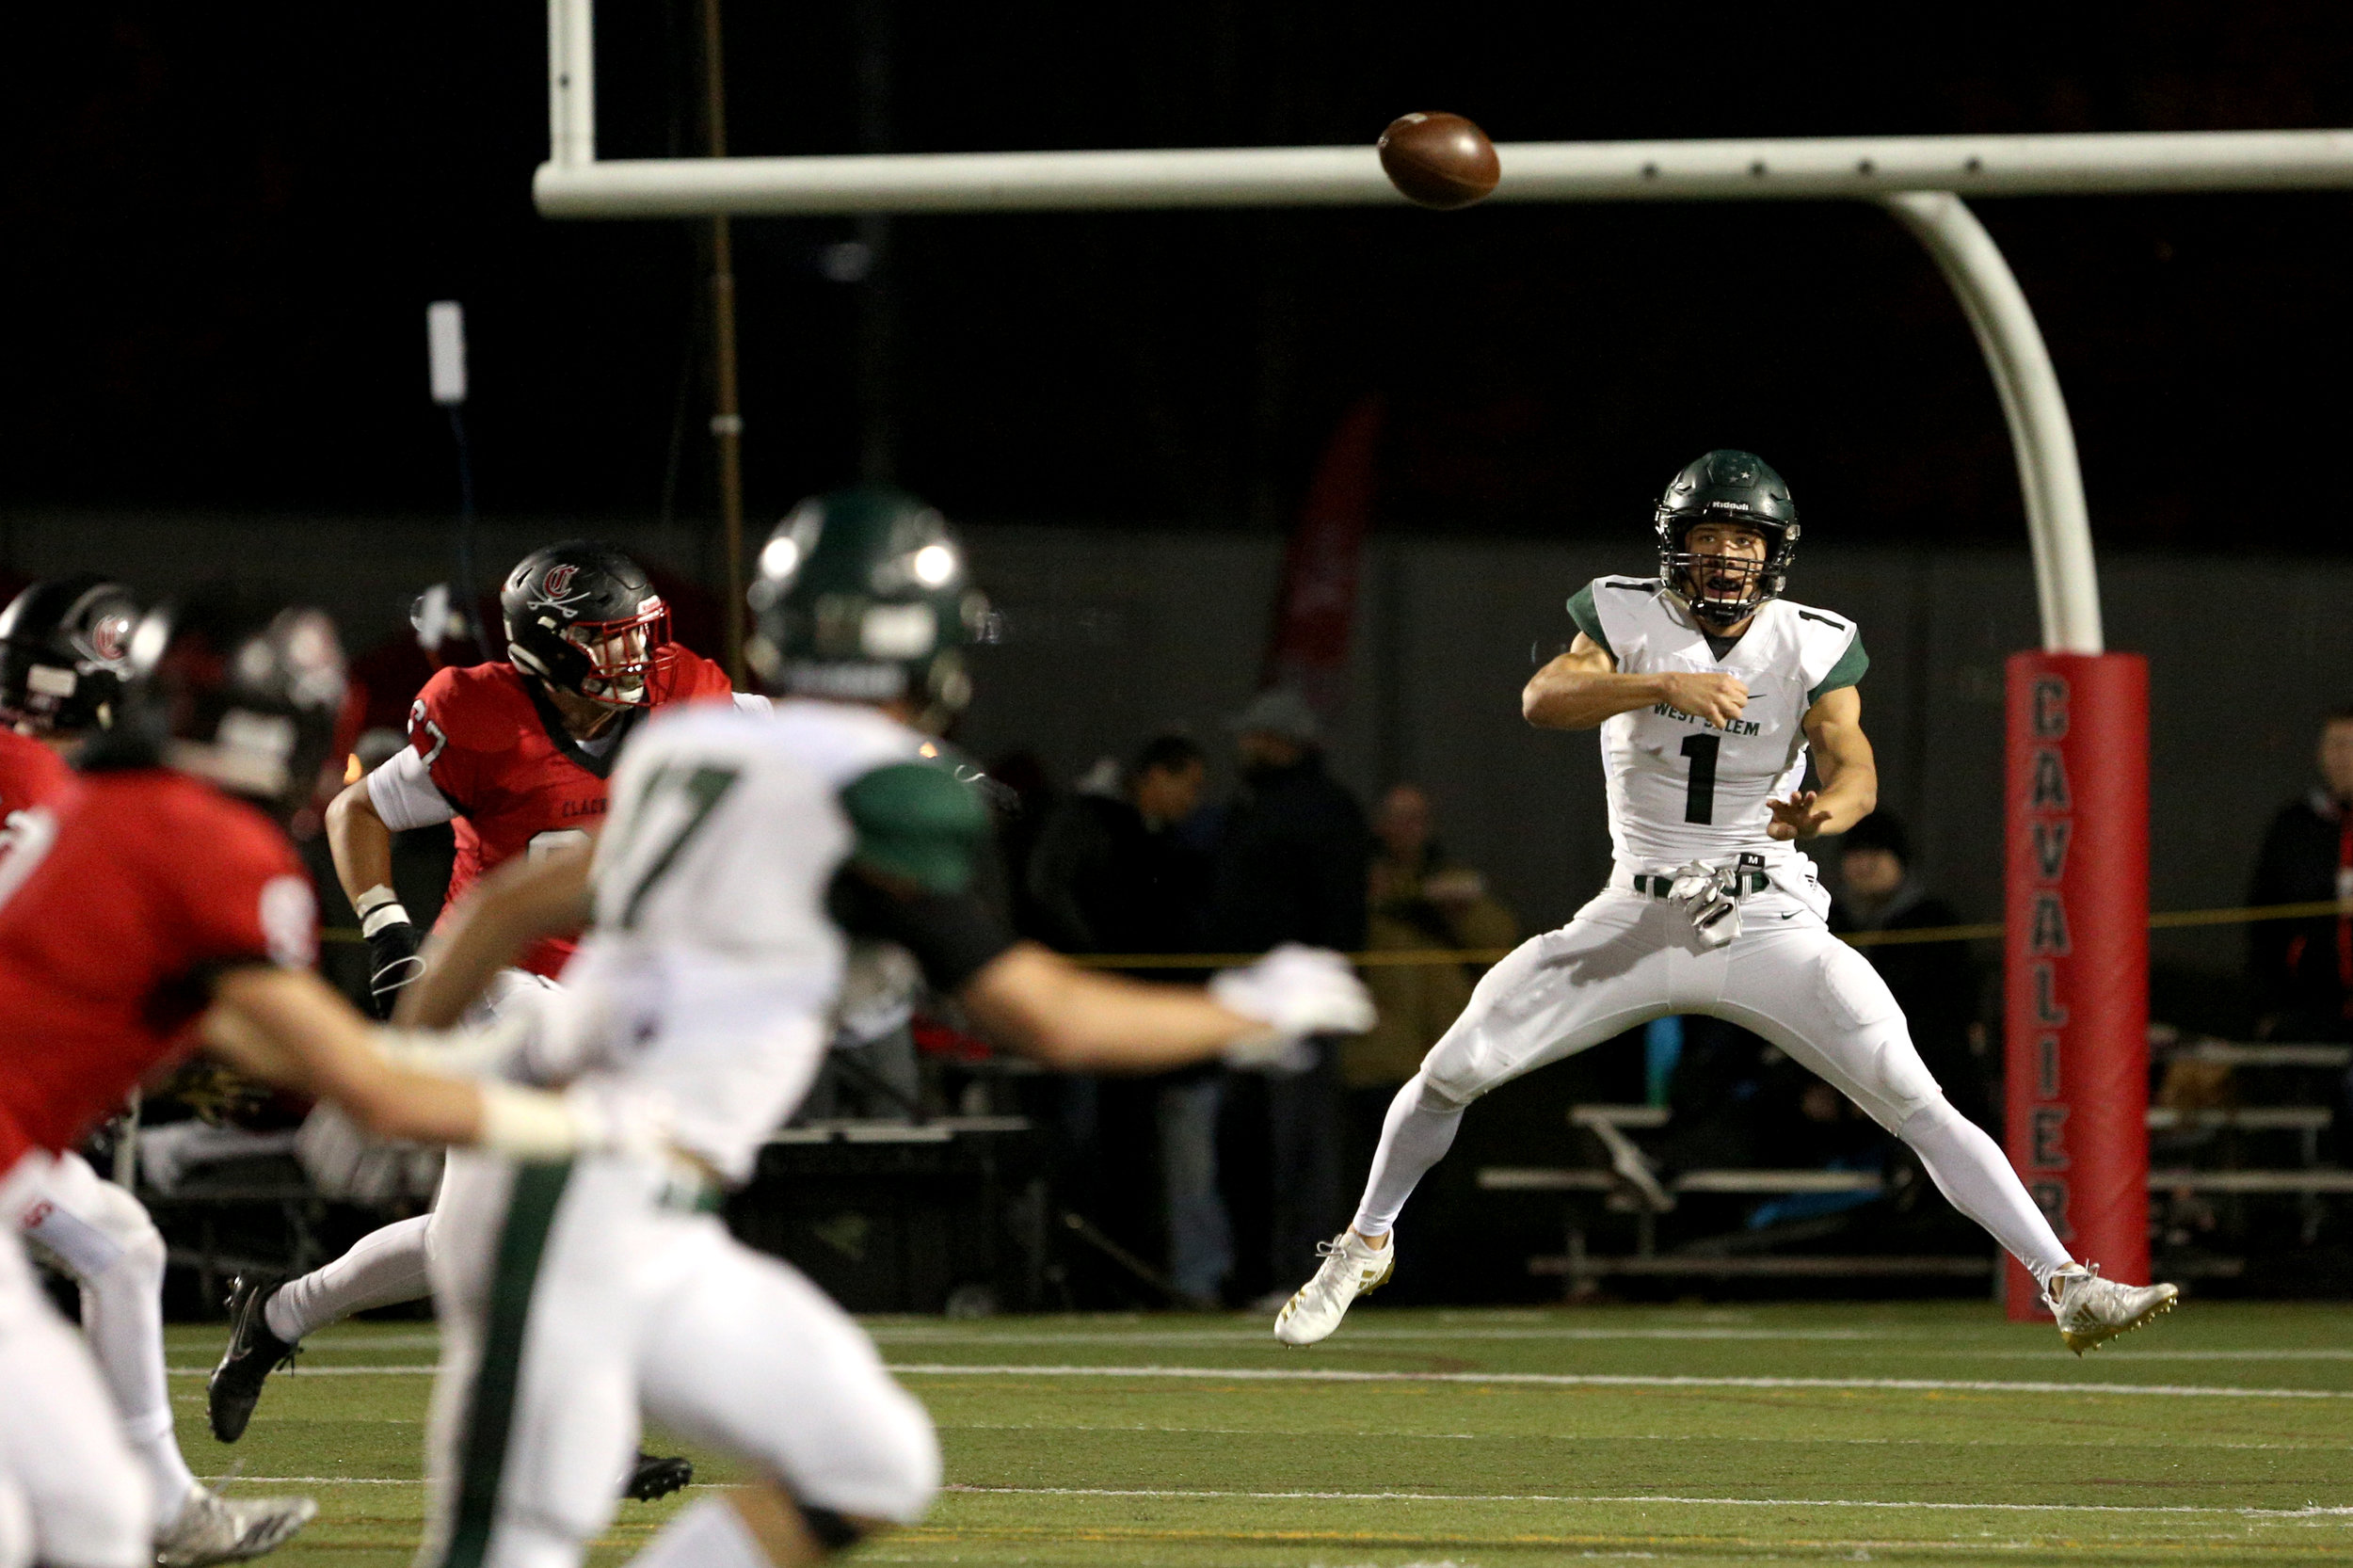 West Salem quarterback Simon Thompson makes a pass during the West Salem High School vs. Clackamas High School 6A playoff football game in Clackamas, Oregon on Friday, Nov. 9, 2018.